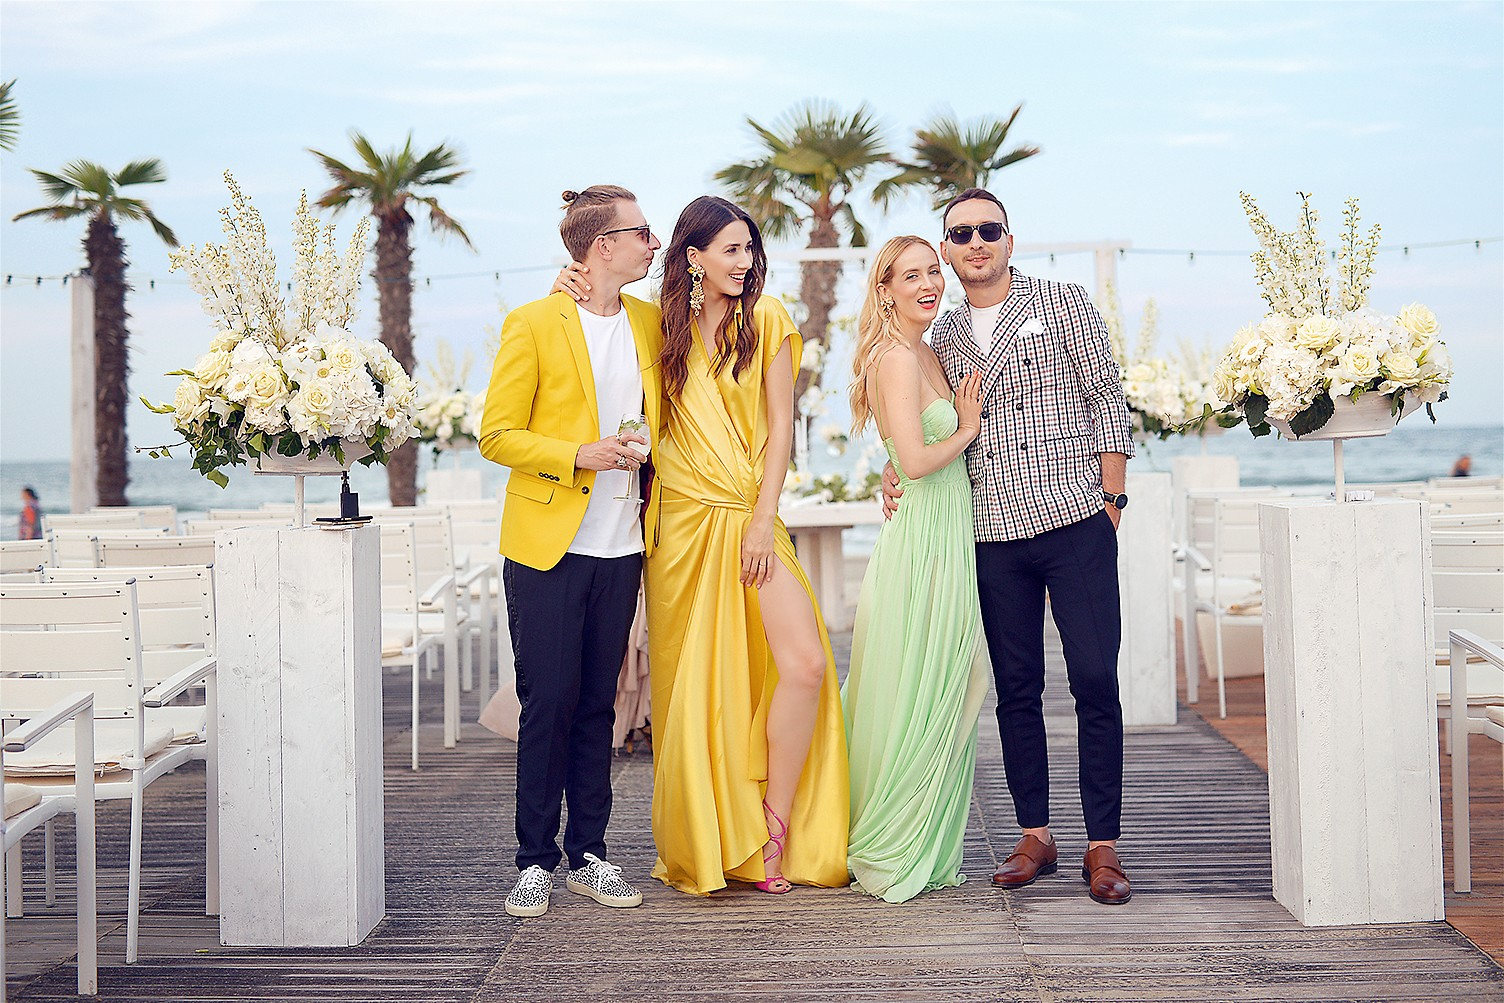 0fabulous_muses_loft_wedding_beach_wedding_dress_cocktail_dress_loft_mamaia copy